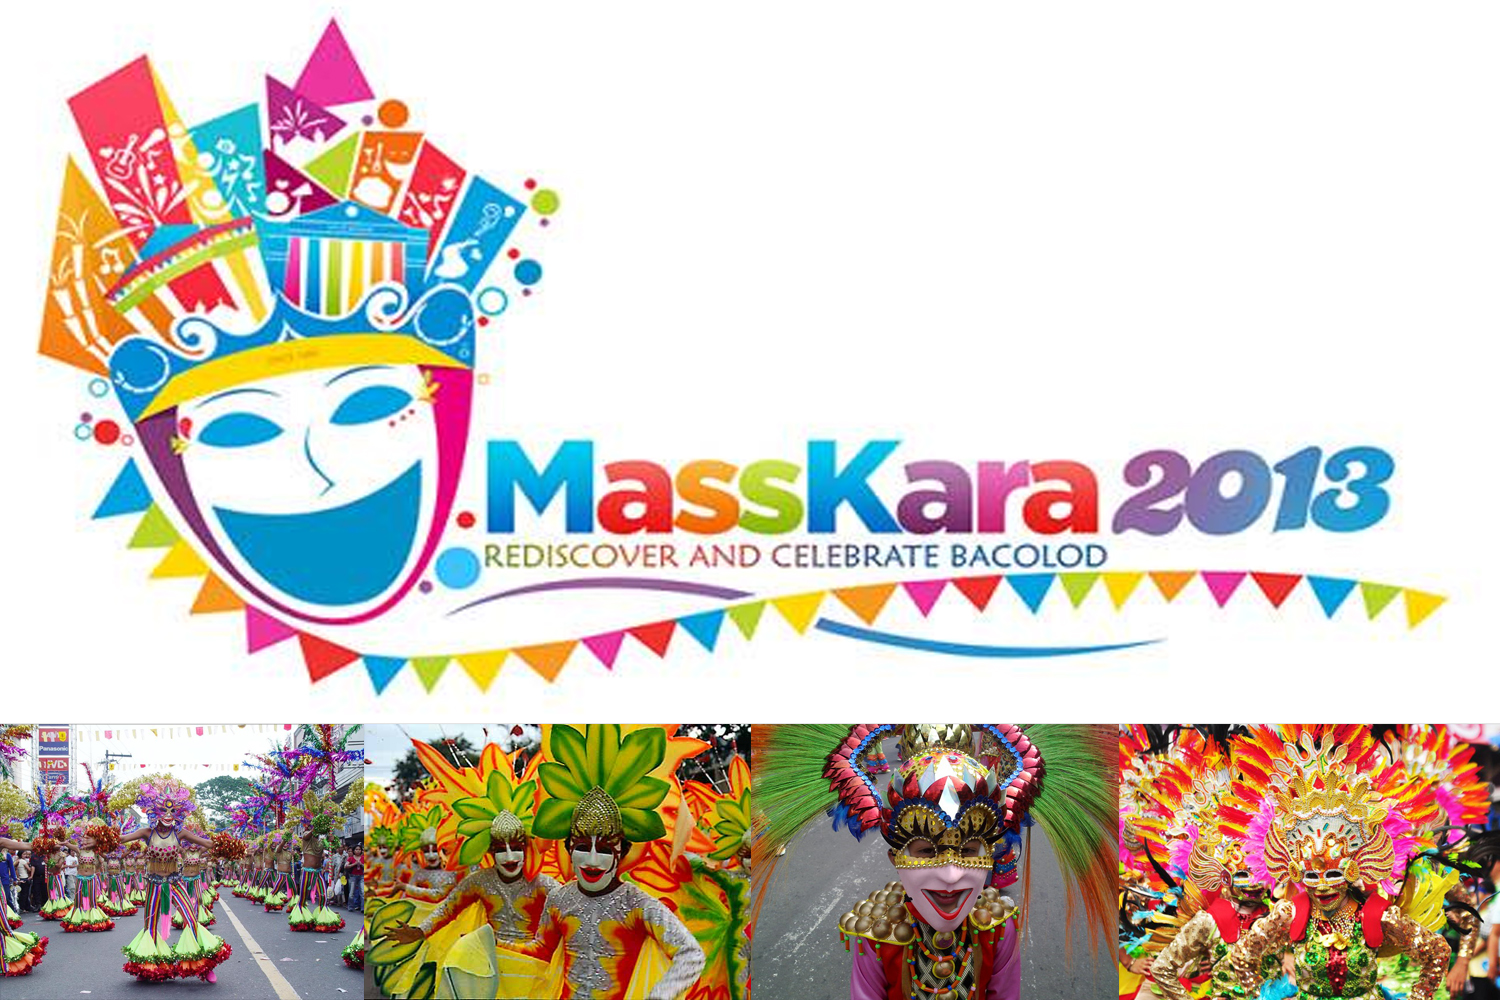 Bacolod City Masskara Festival 2013 Schedule Of Activities